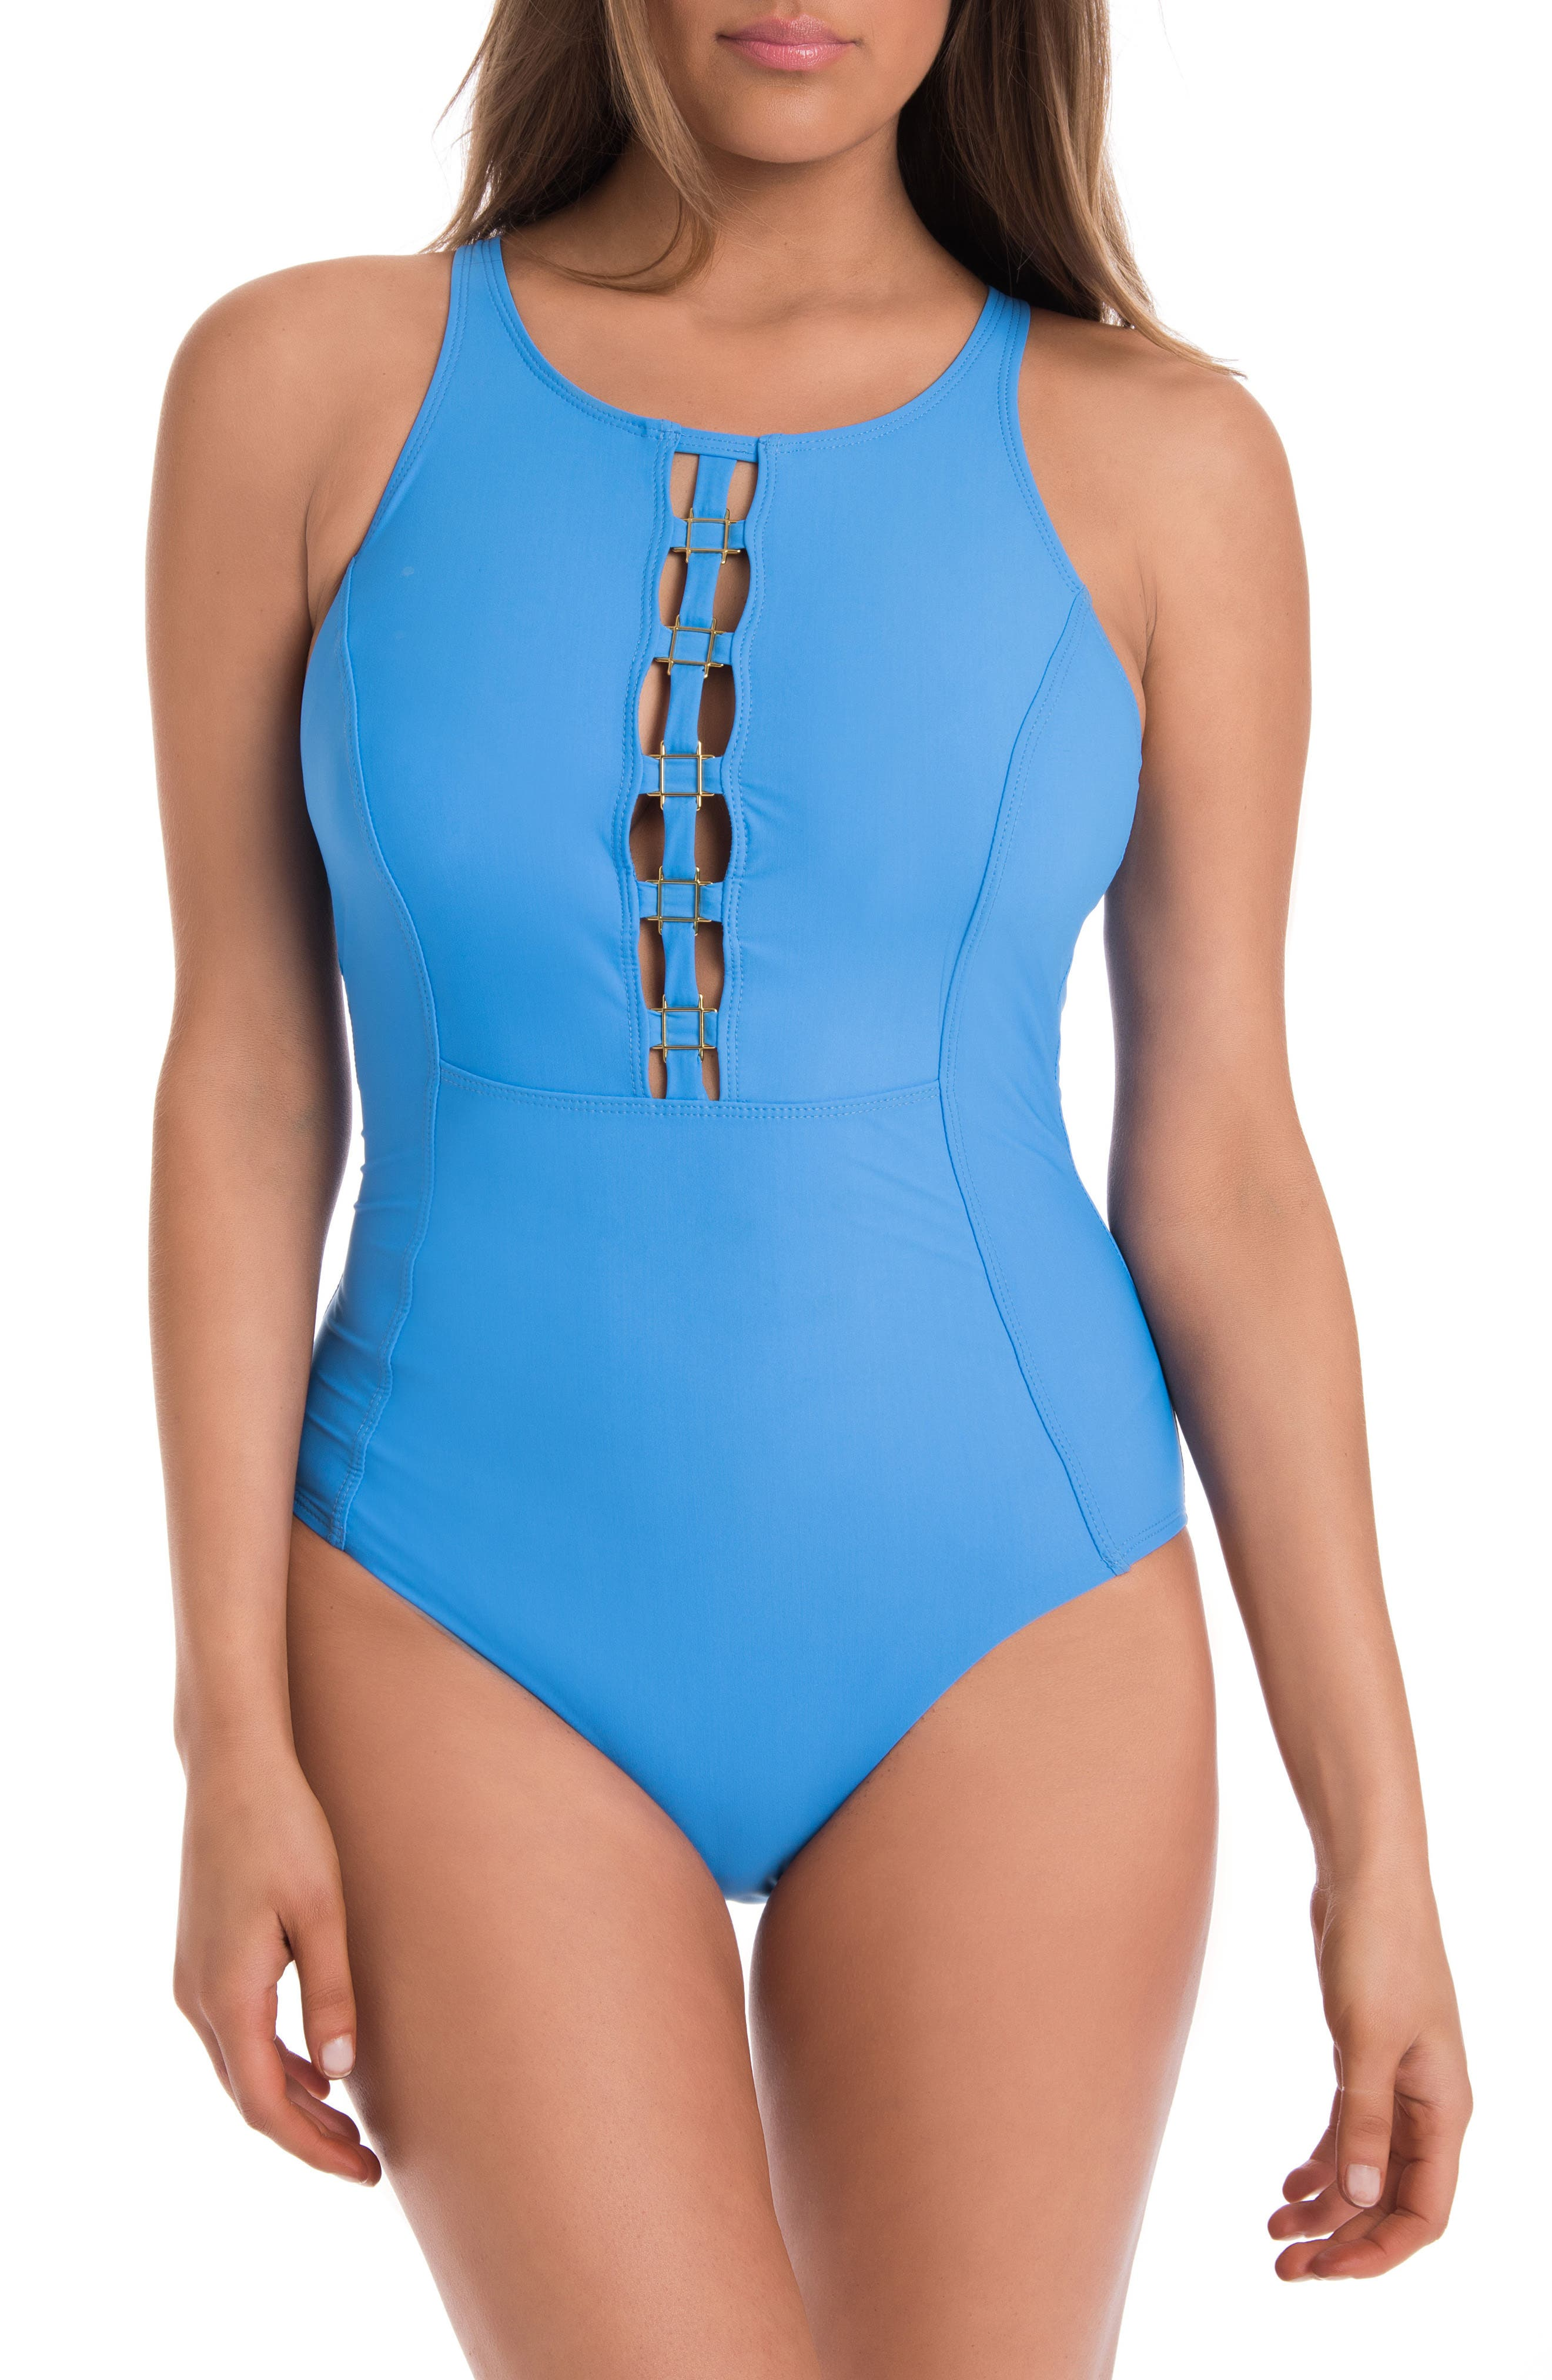 Main Image - Amoressa You Only Live Twice Sonder One-Piece Swimsuit